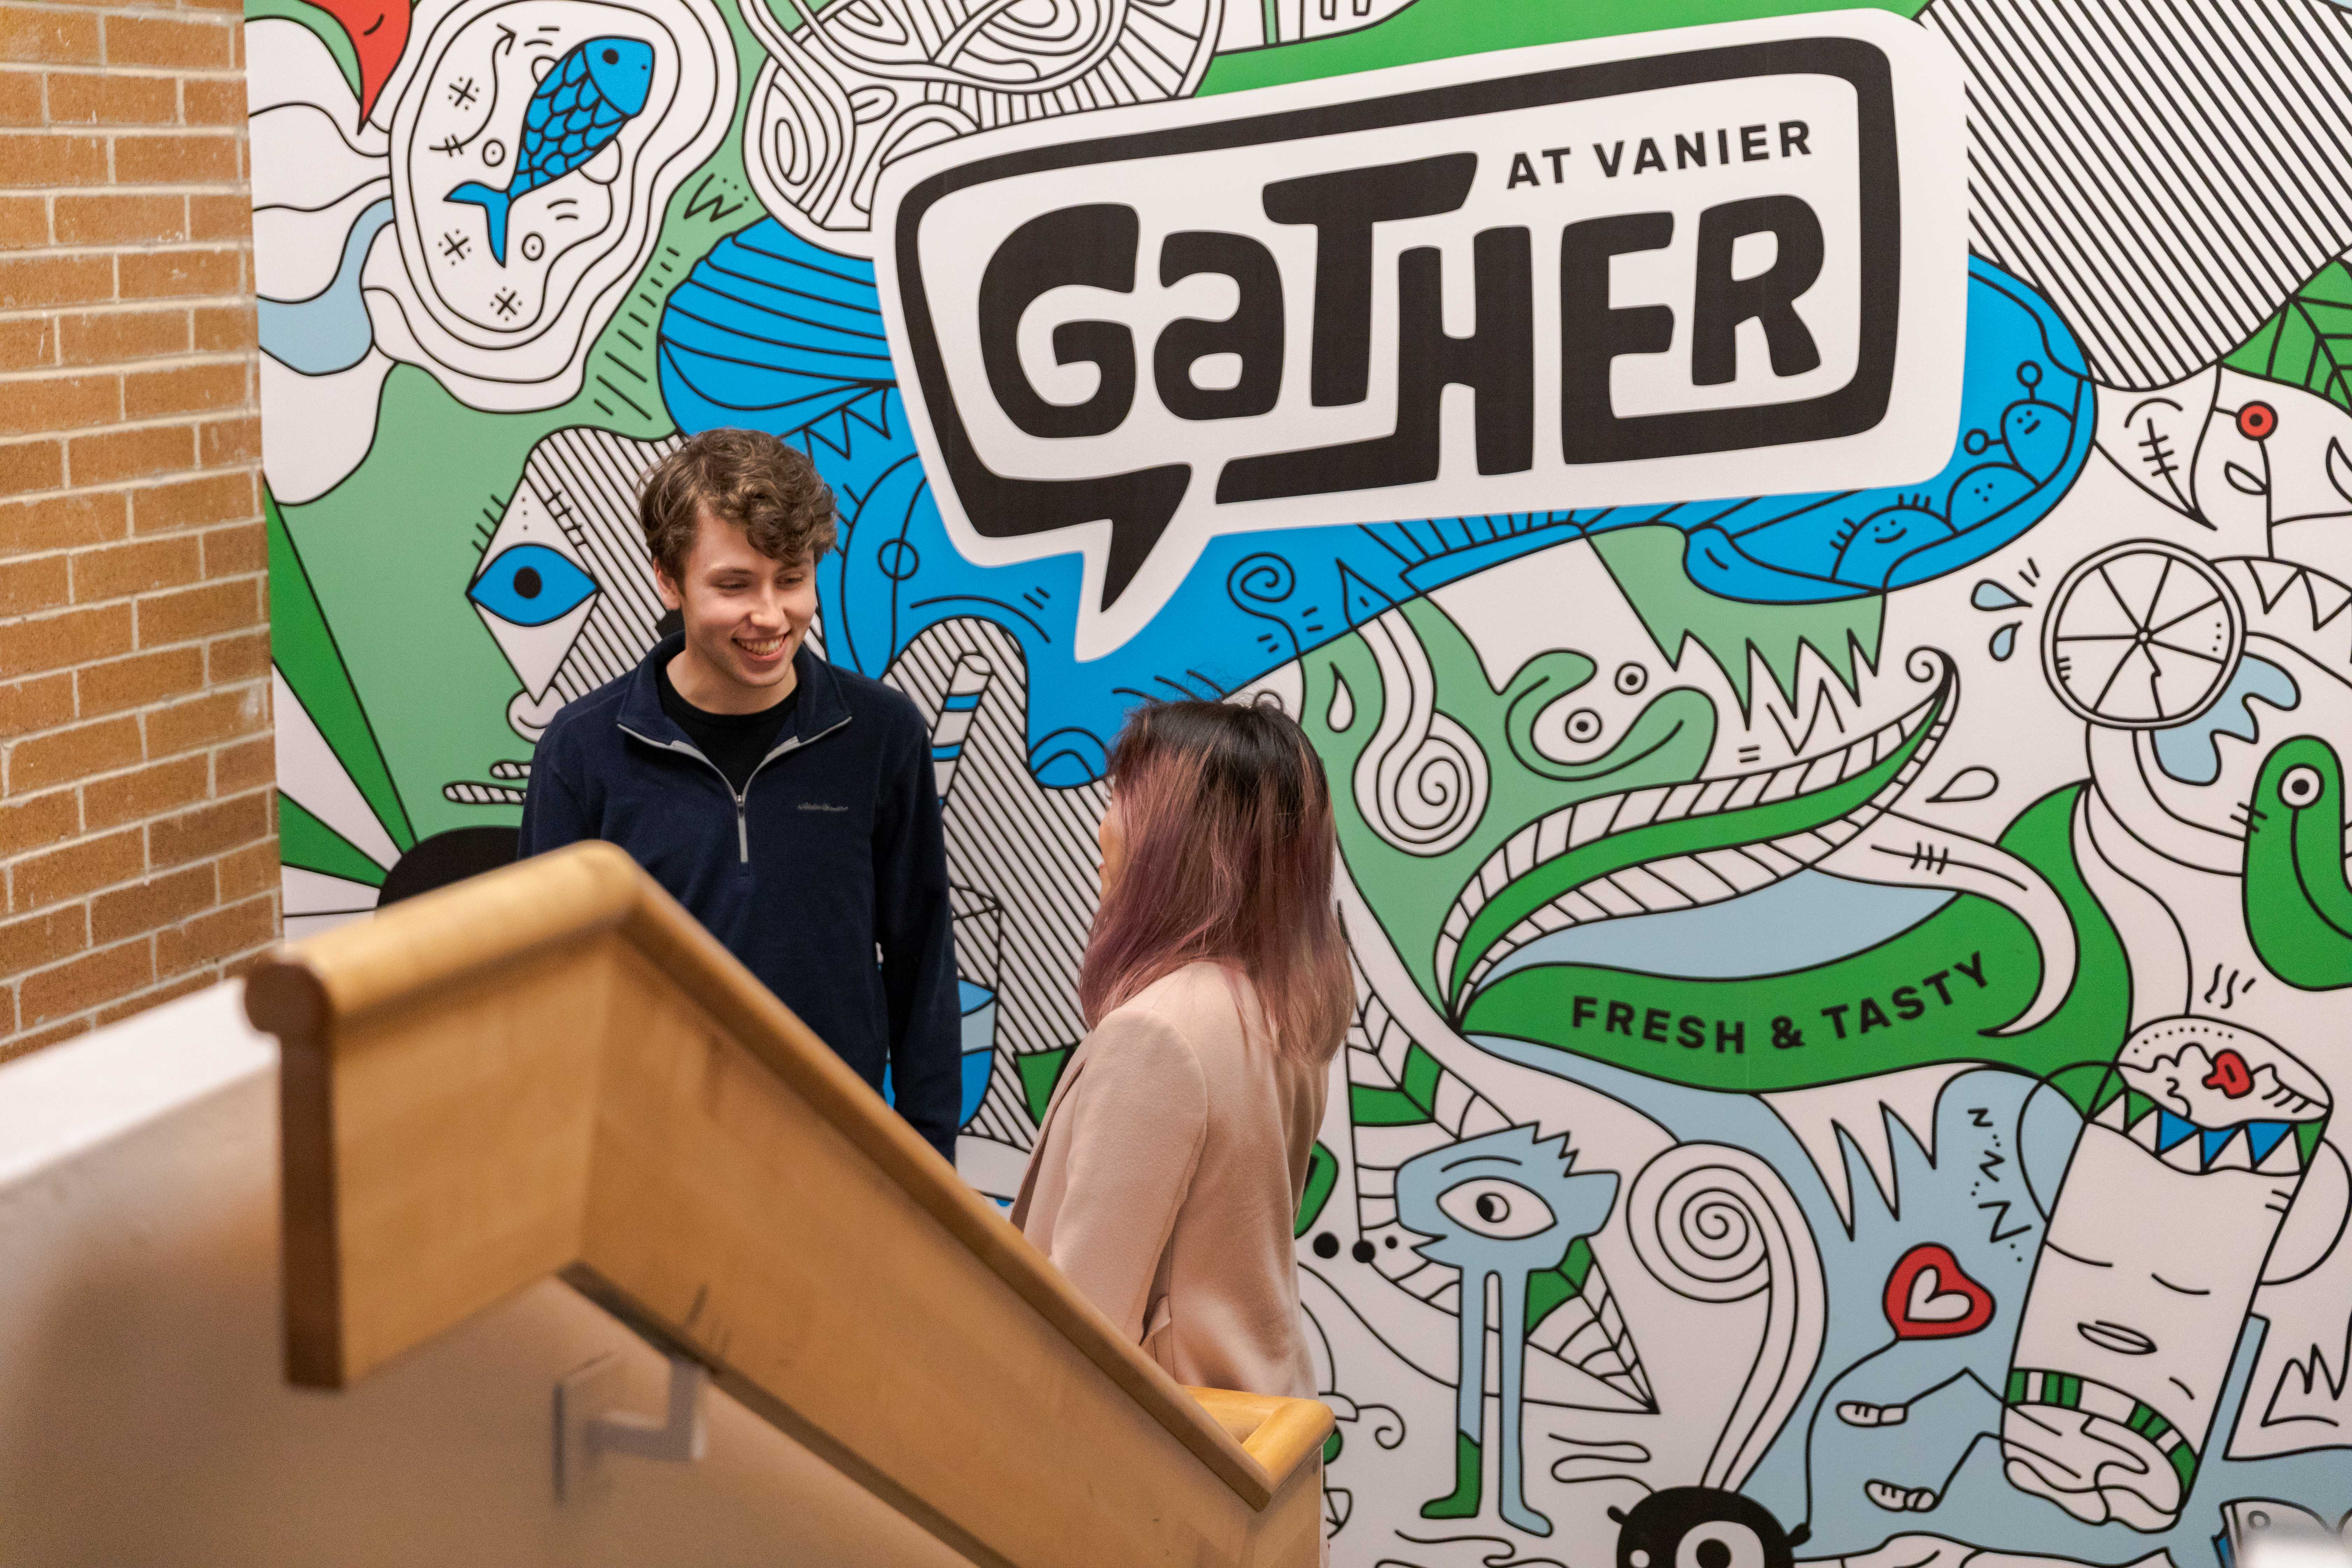 gather mural